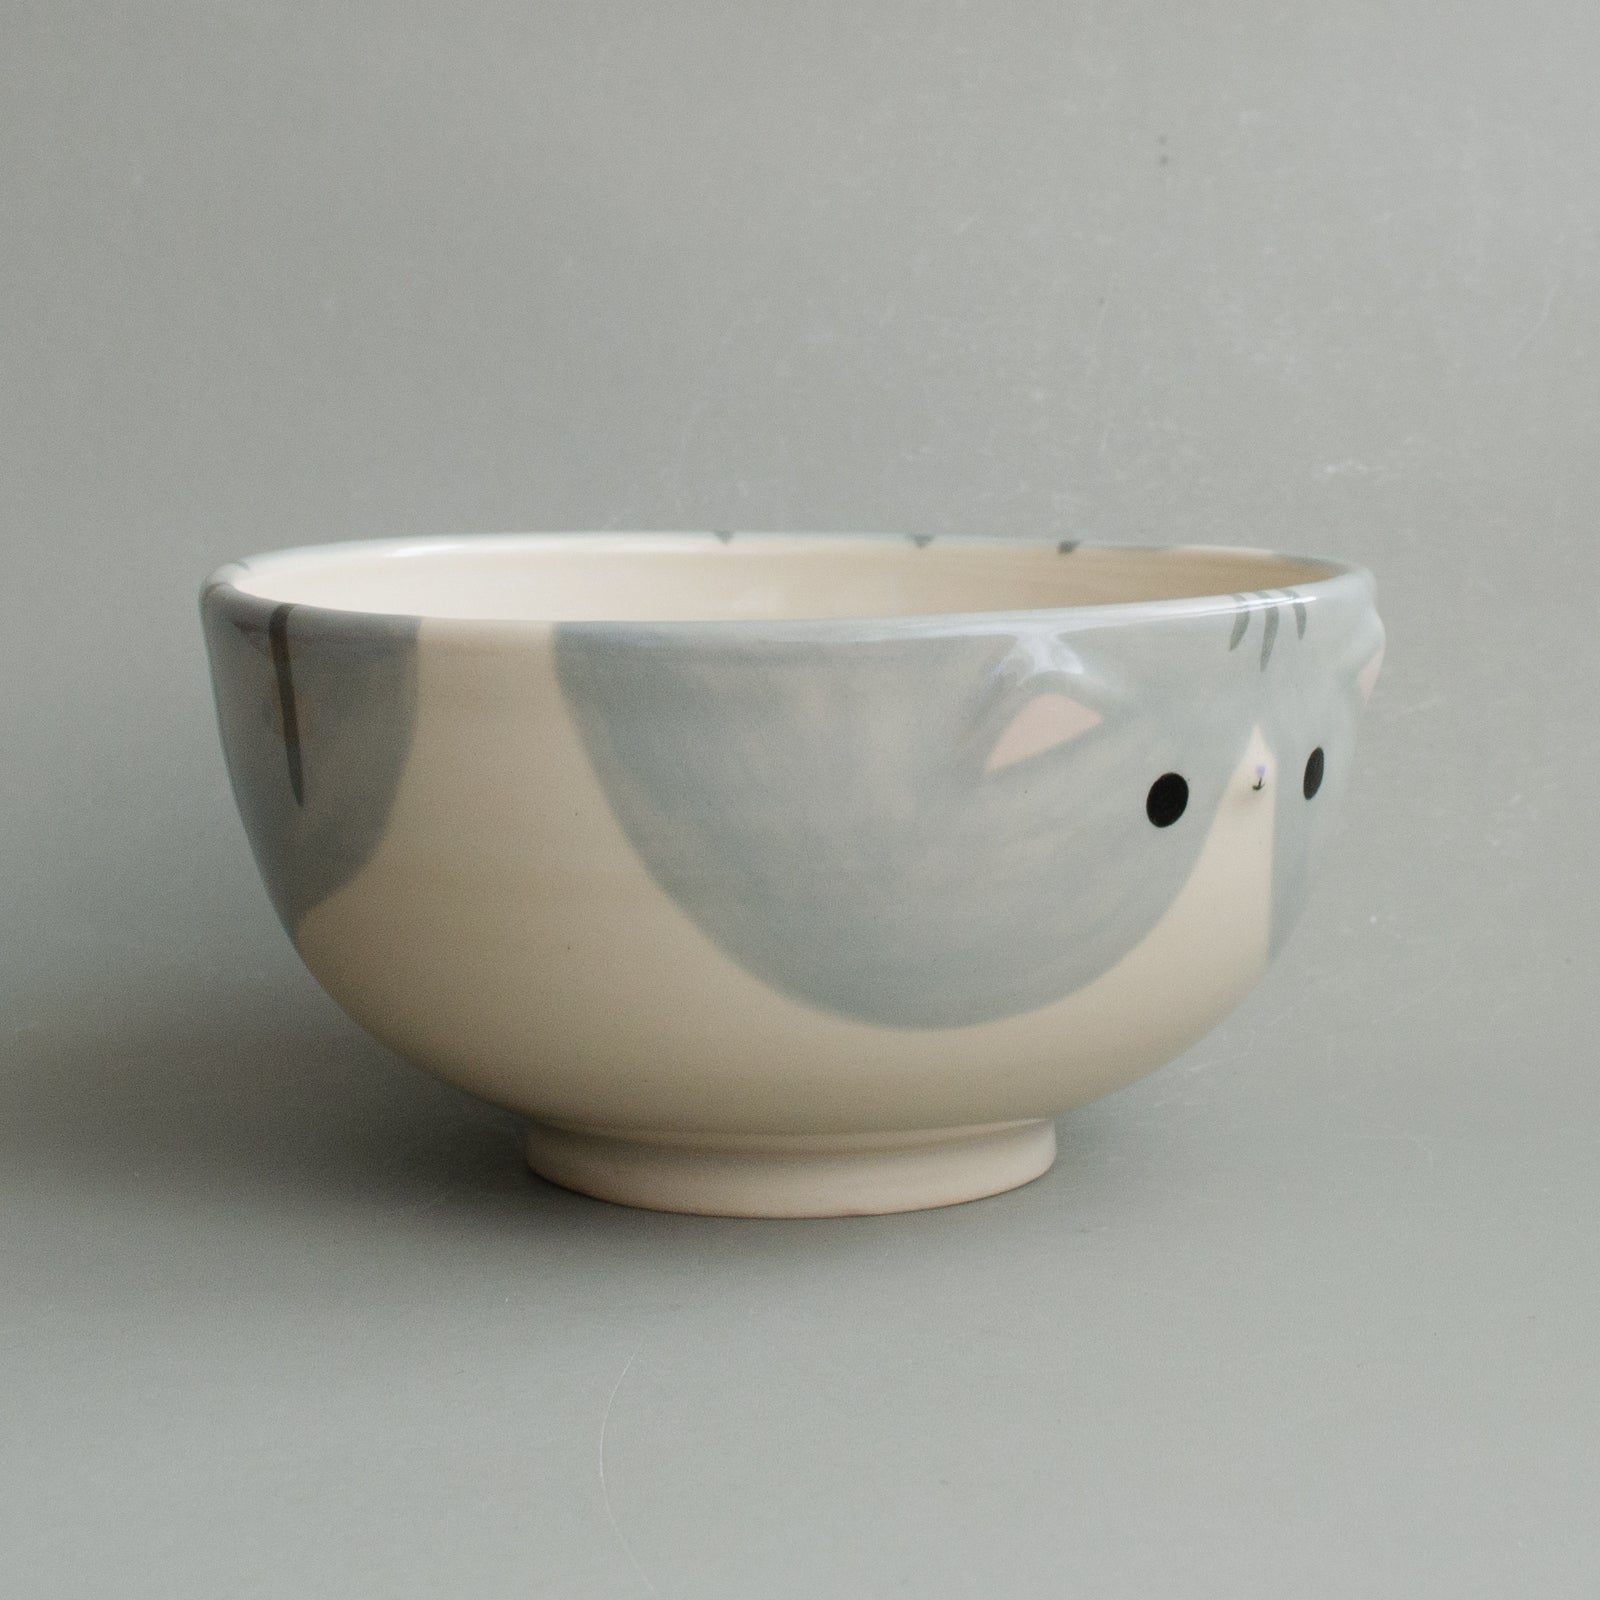 Pebble Kitty Bowl